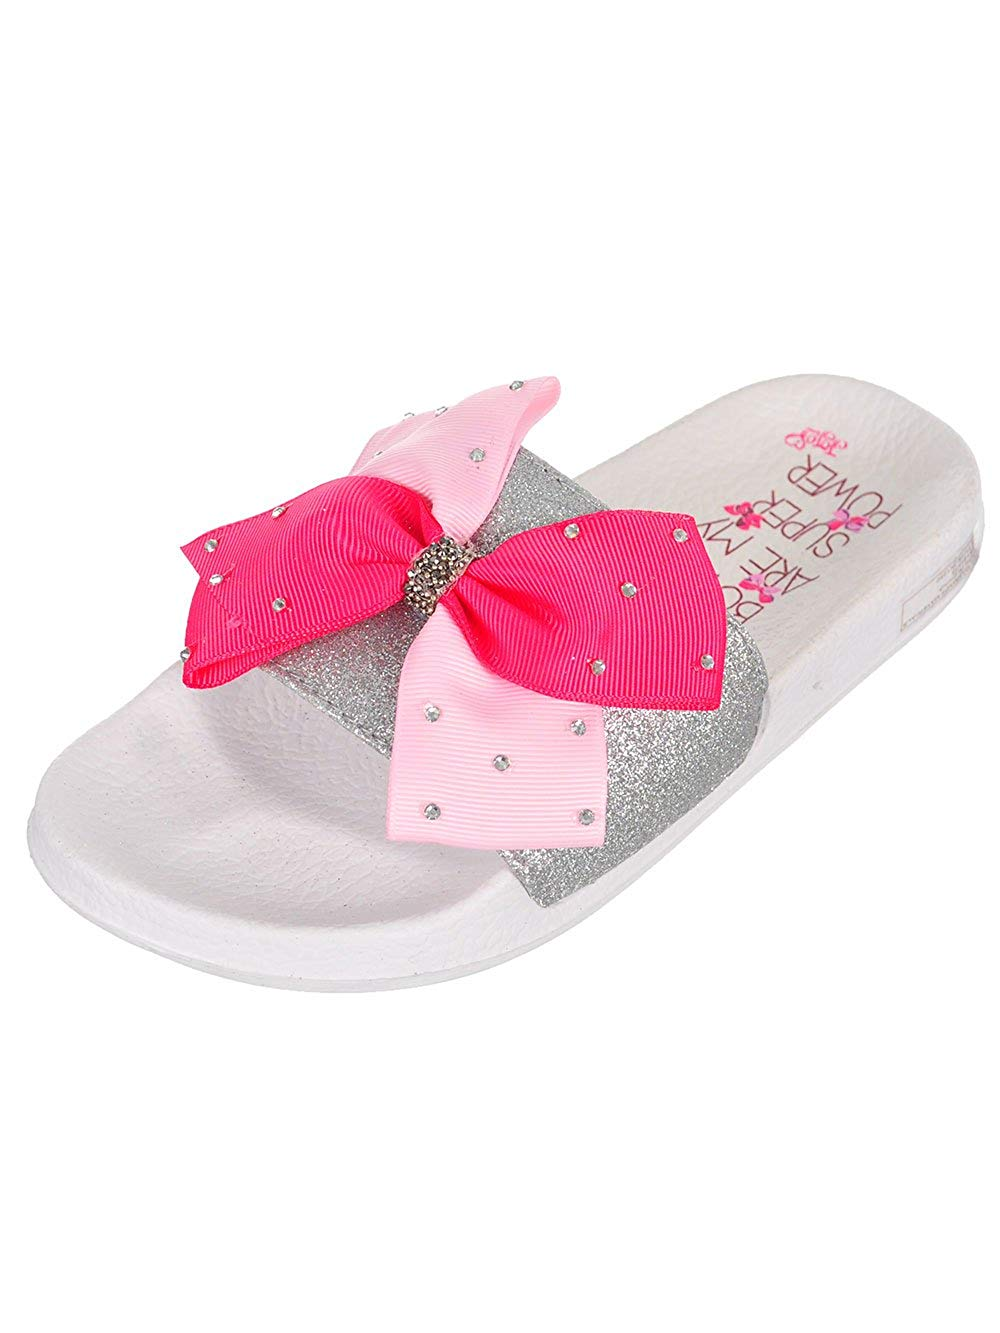 6d183e961 Get Quotations · Jojo Siwa Girls  Slide Sandals